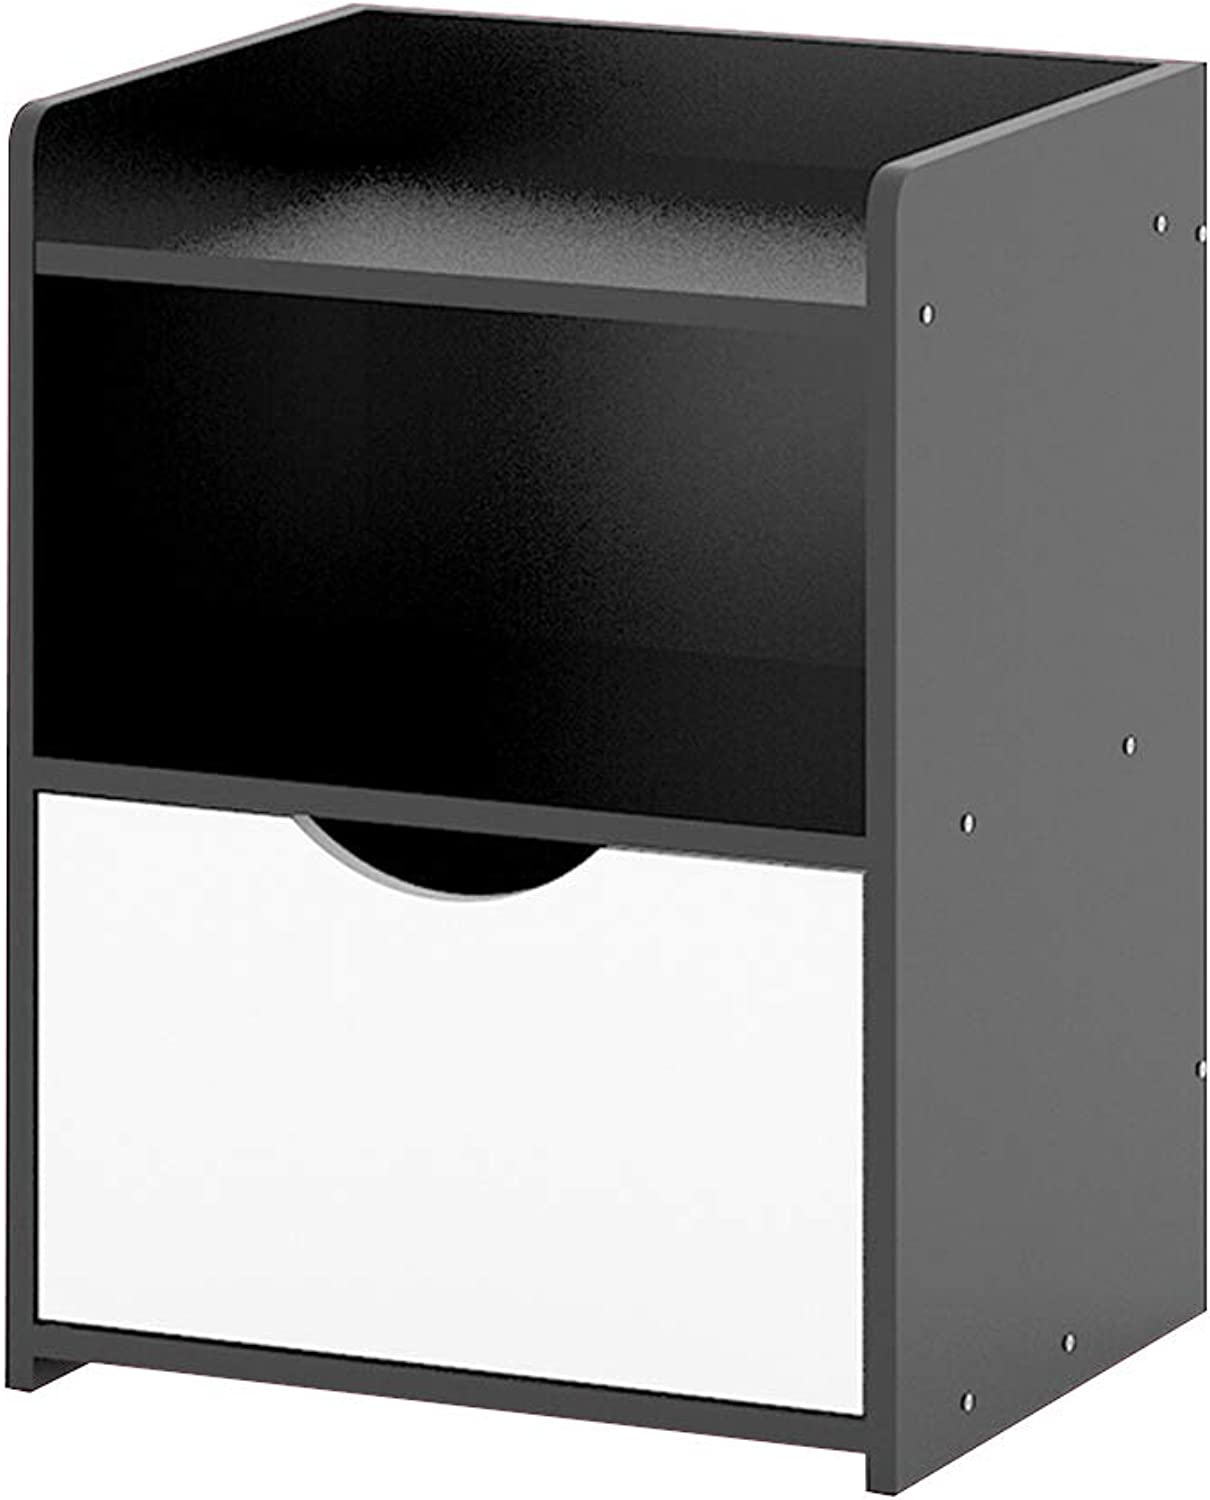 CL Bedside Table- with 1 Drawer, Wooden MDF Side Table Night Stand Bedroom Storage Unit Black Bedside Tables